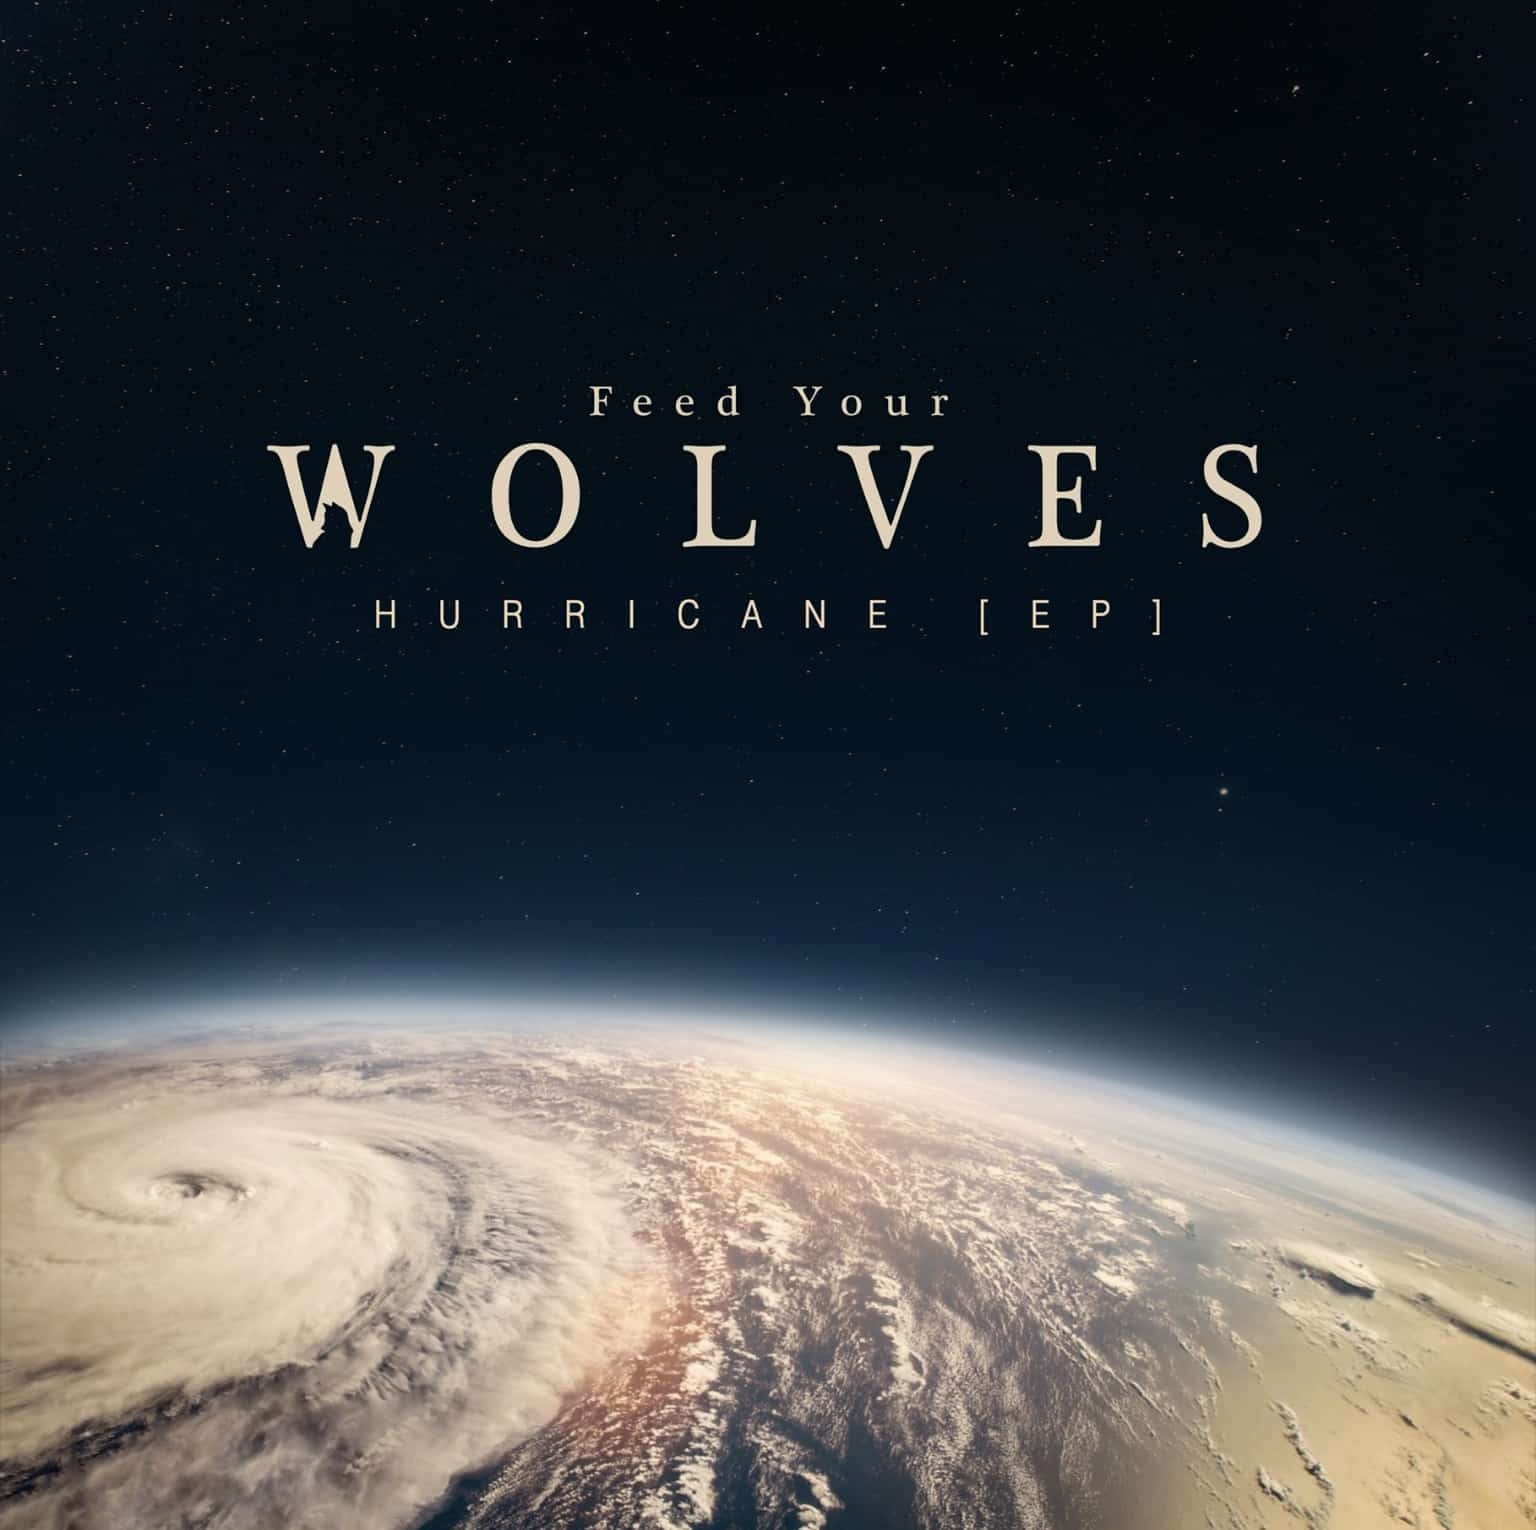 feed your wolves indie rock alt england solo andy davidson